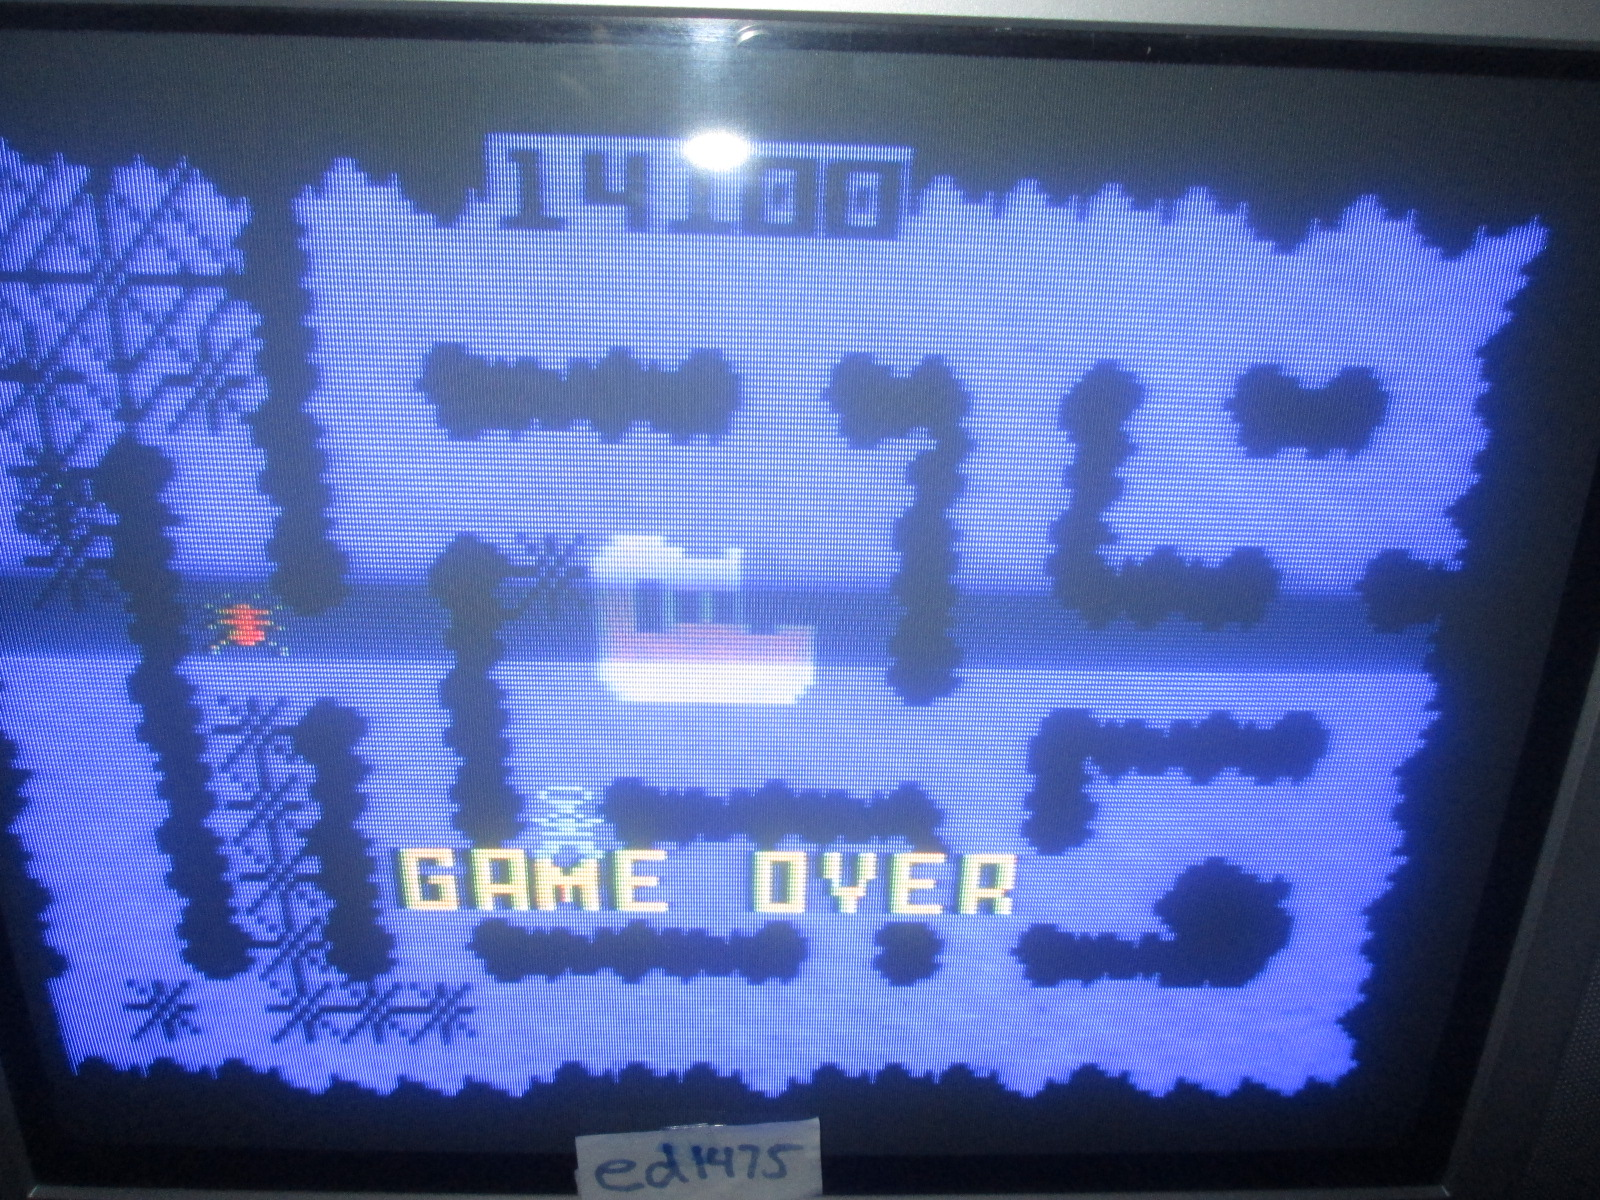 ed1475: Ms. Night Stalker (Intellivision) 14,100 points on 2014-11-19 20:09:38